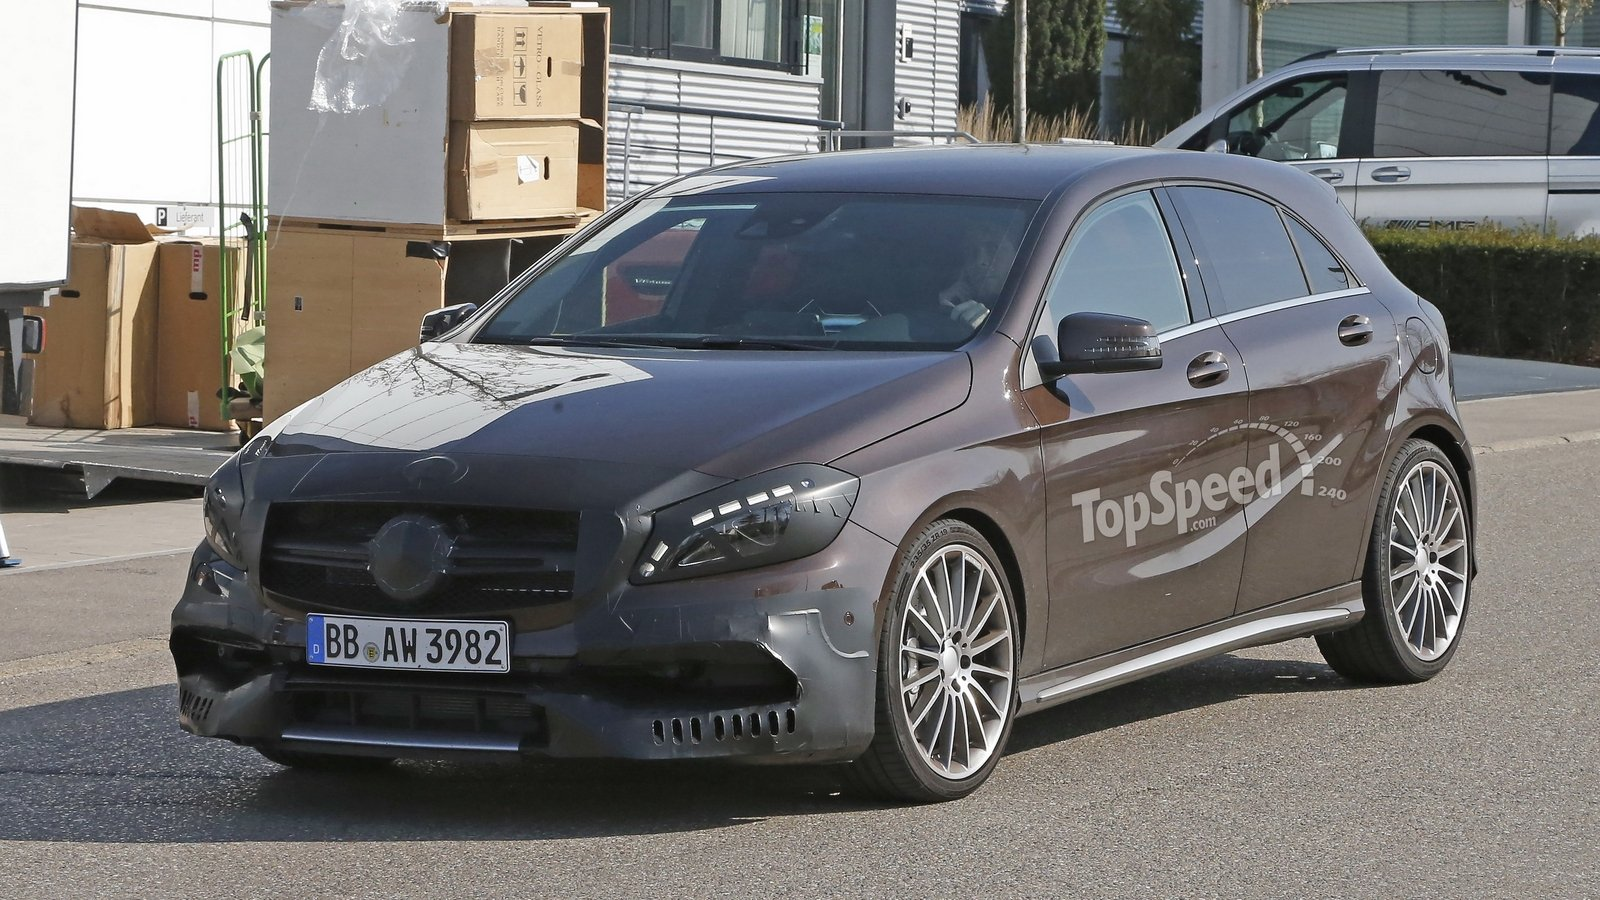 Mercedes a45 amg testing in germany spy shots news top for Mercedes benz in germany